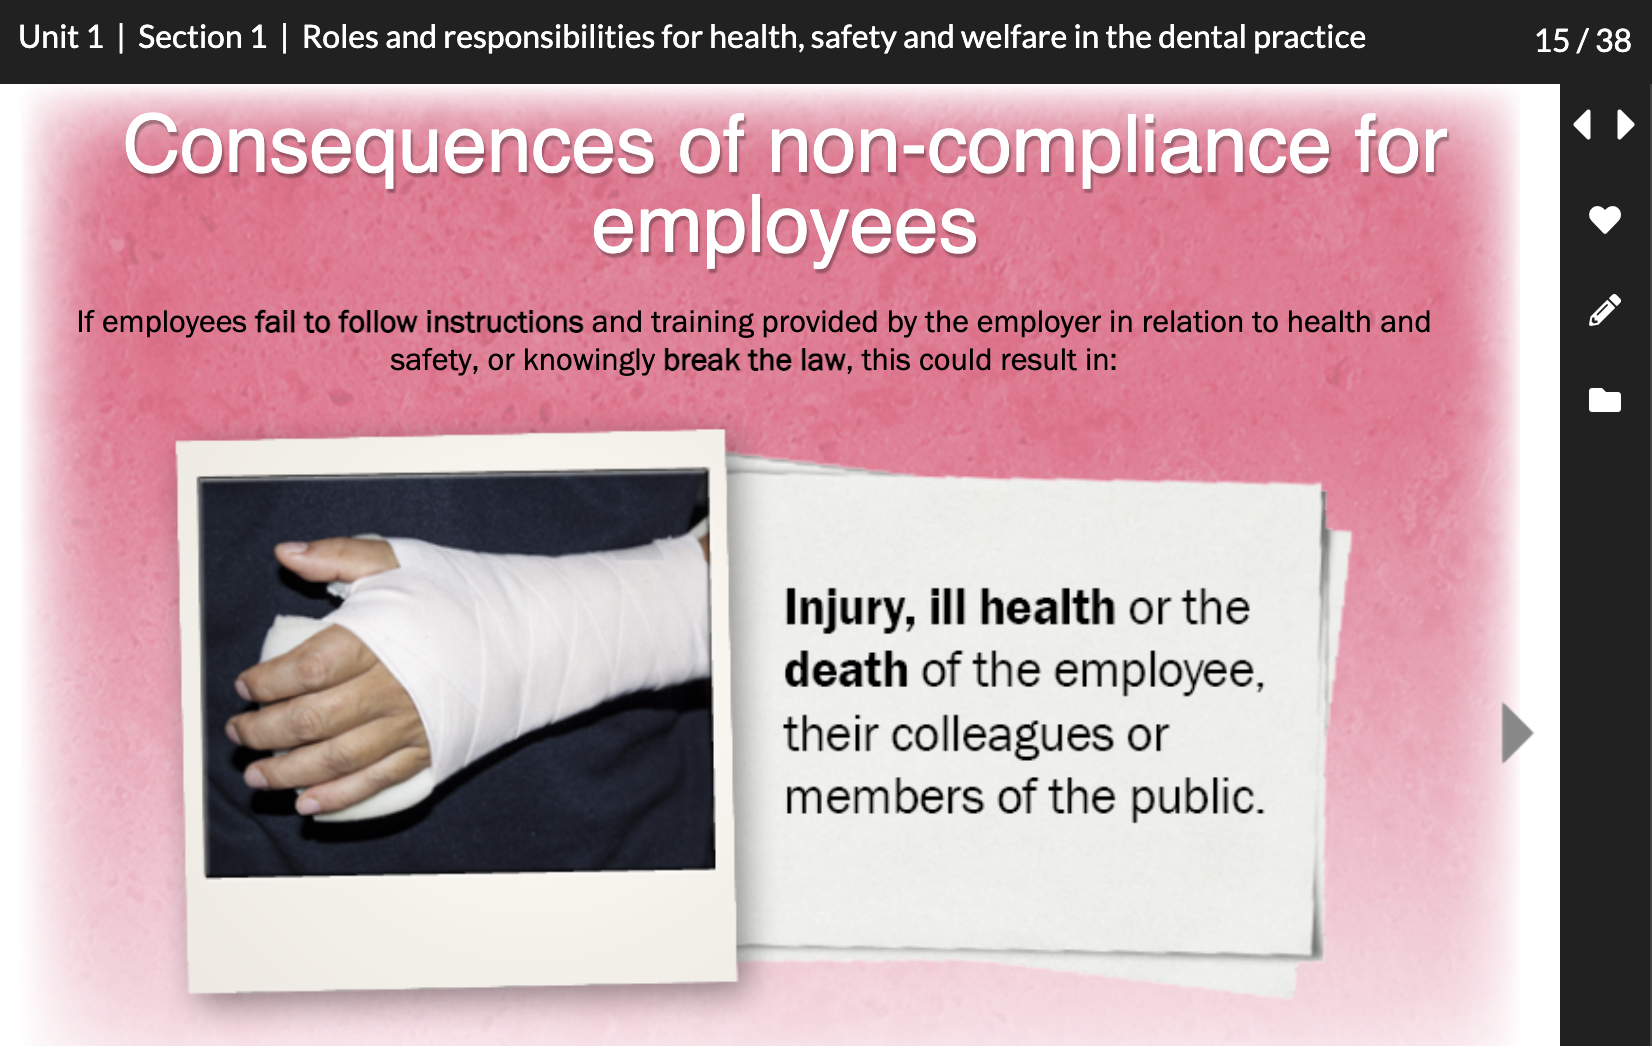 health, safety and welfare in the dental practice